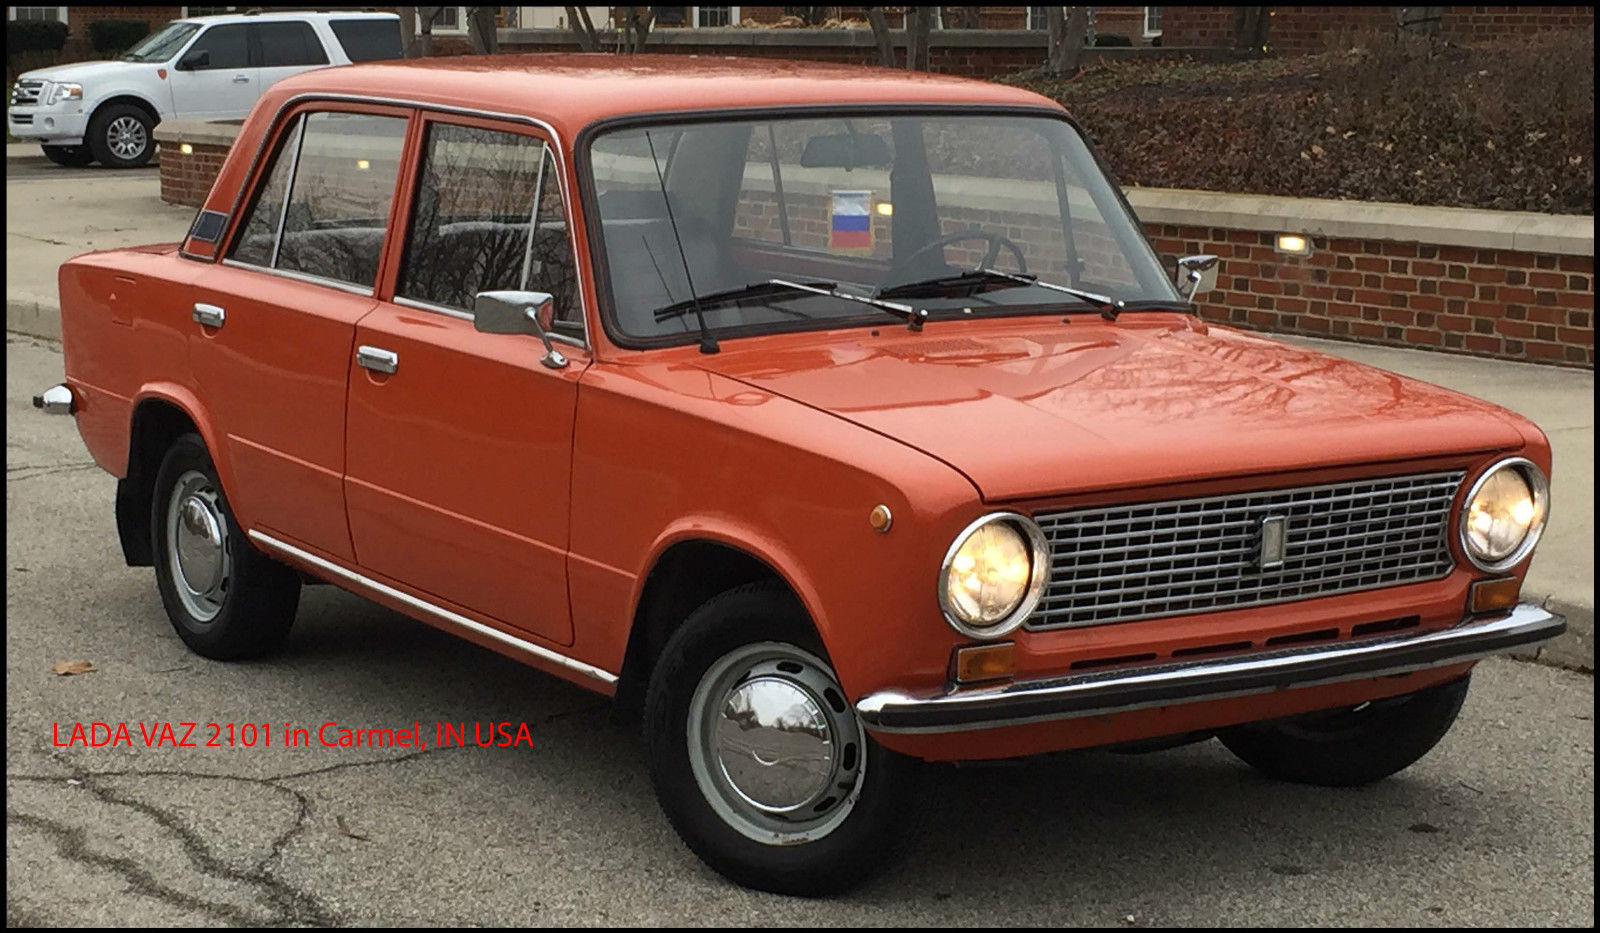 Lada Vaz 2101 Russian Soviet Car In Indiana Very Rare Classic